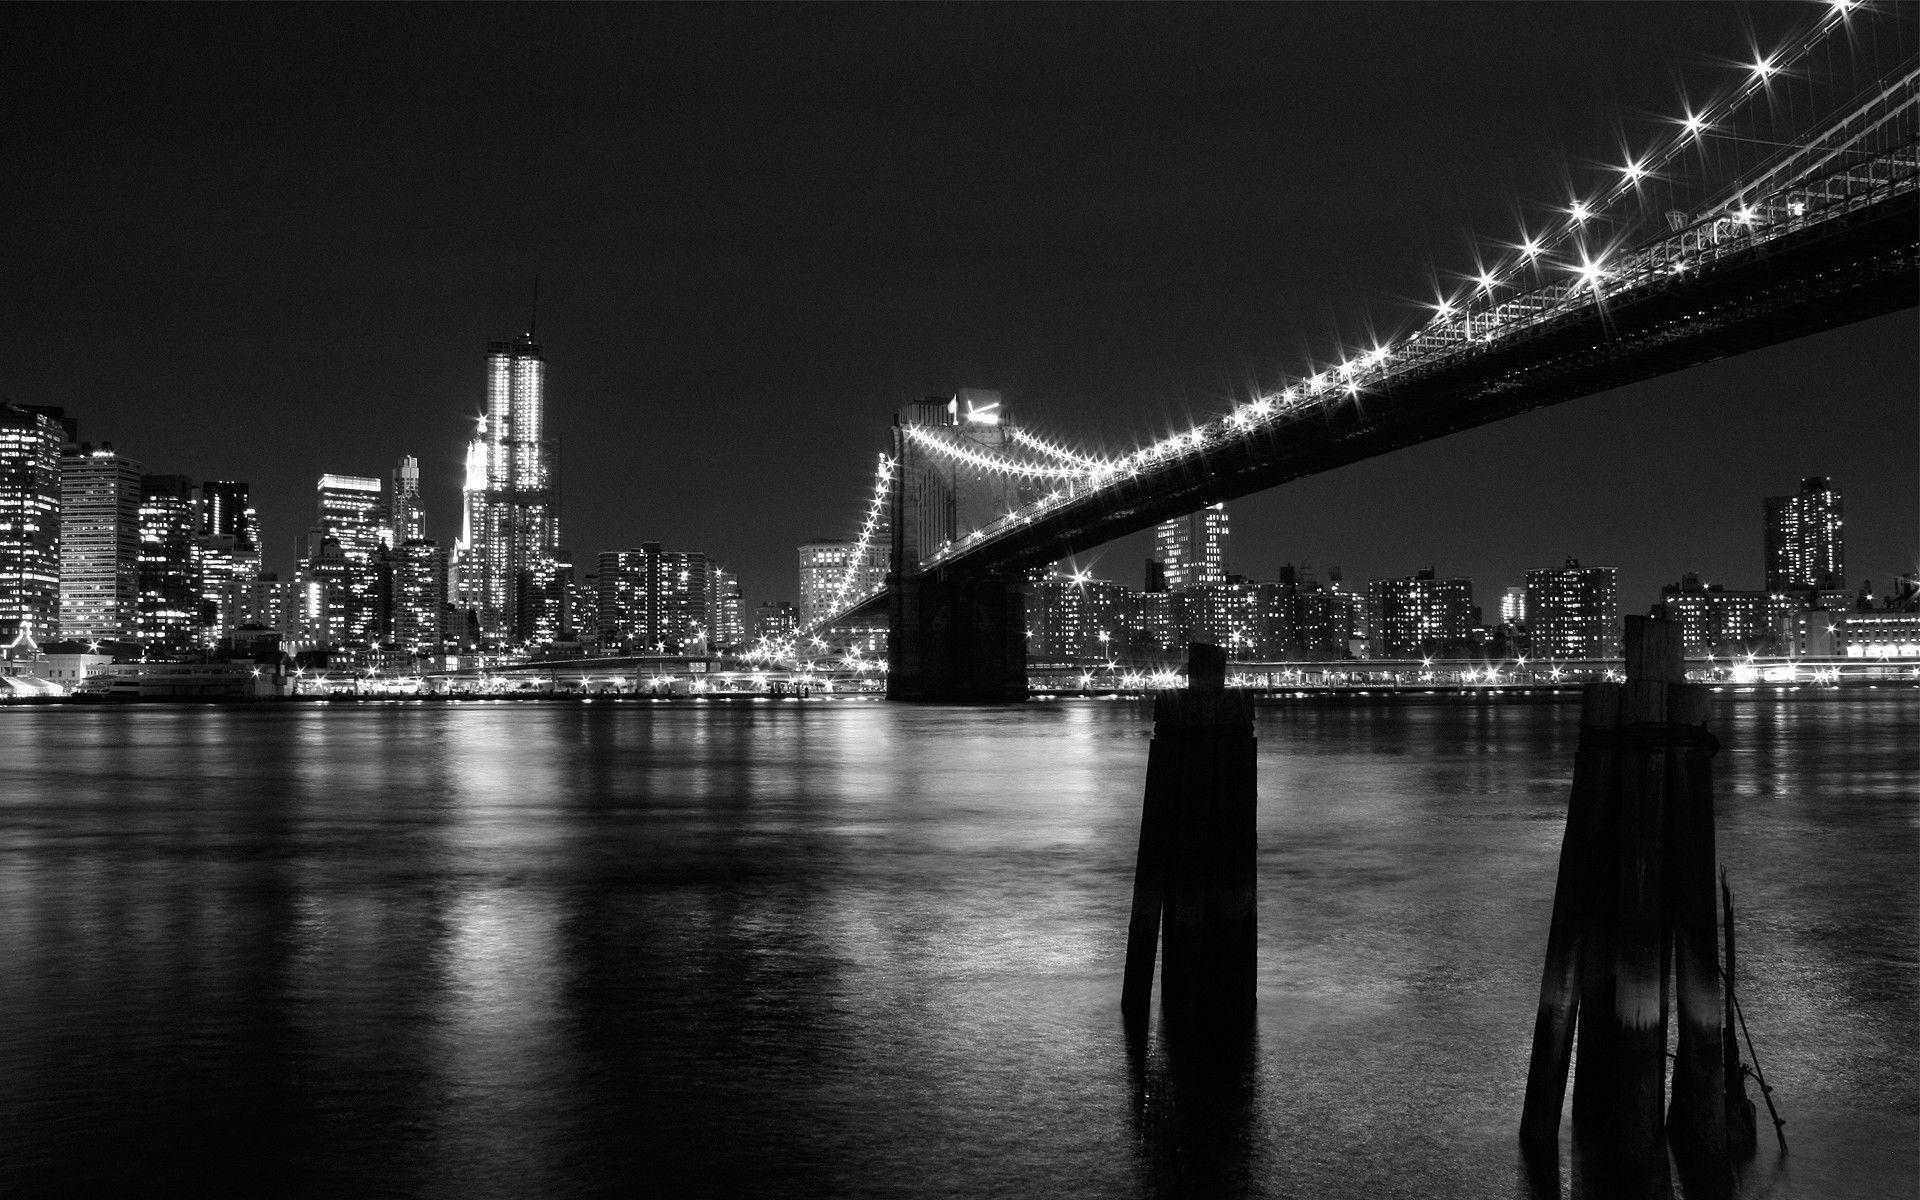 city lights black and white - photo #5